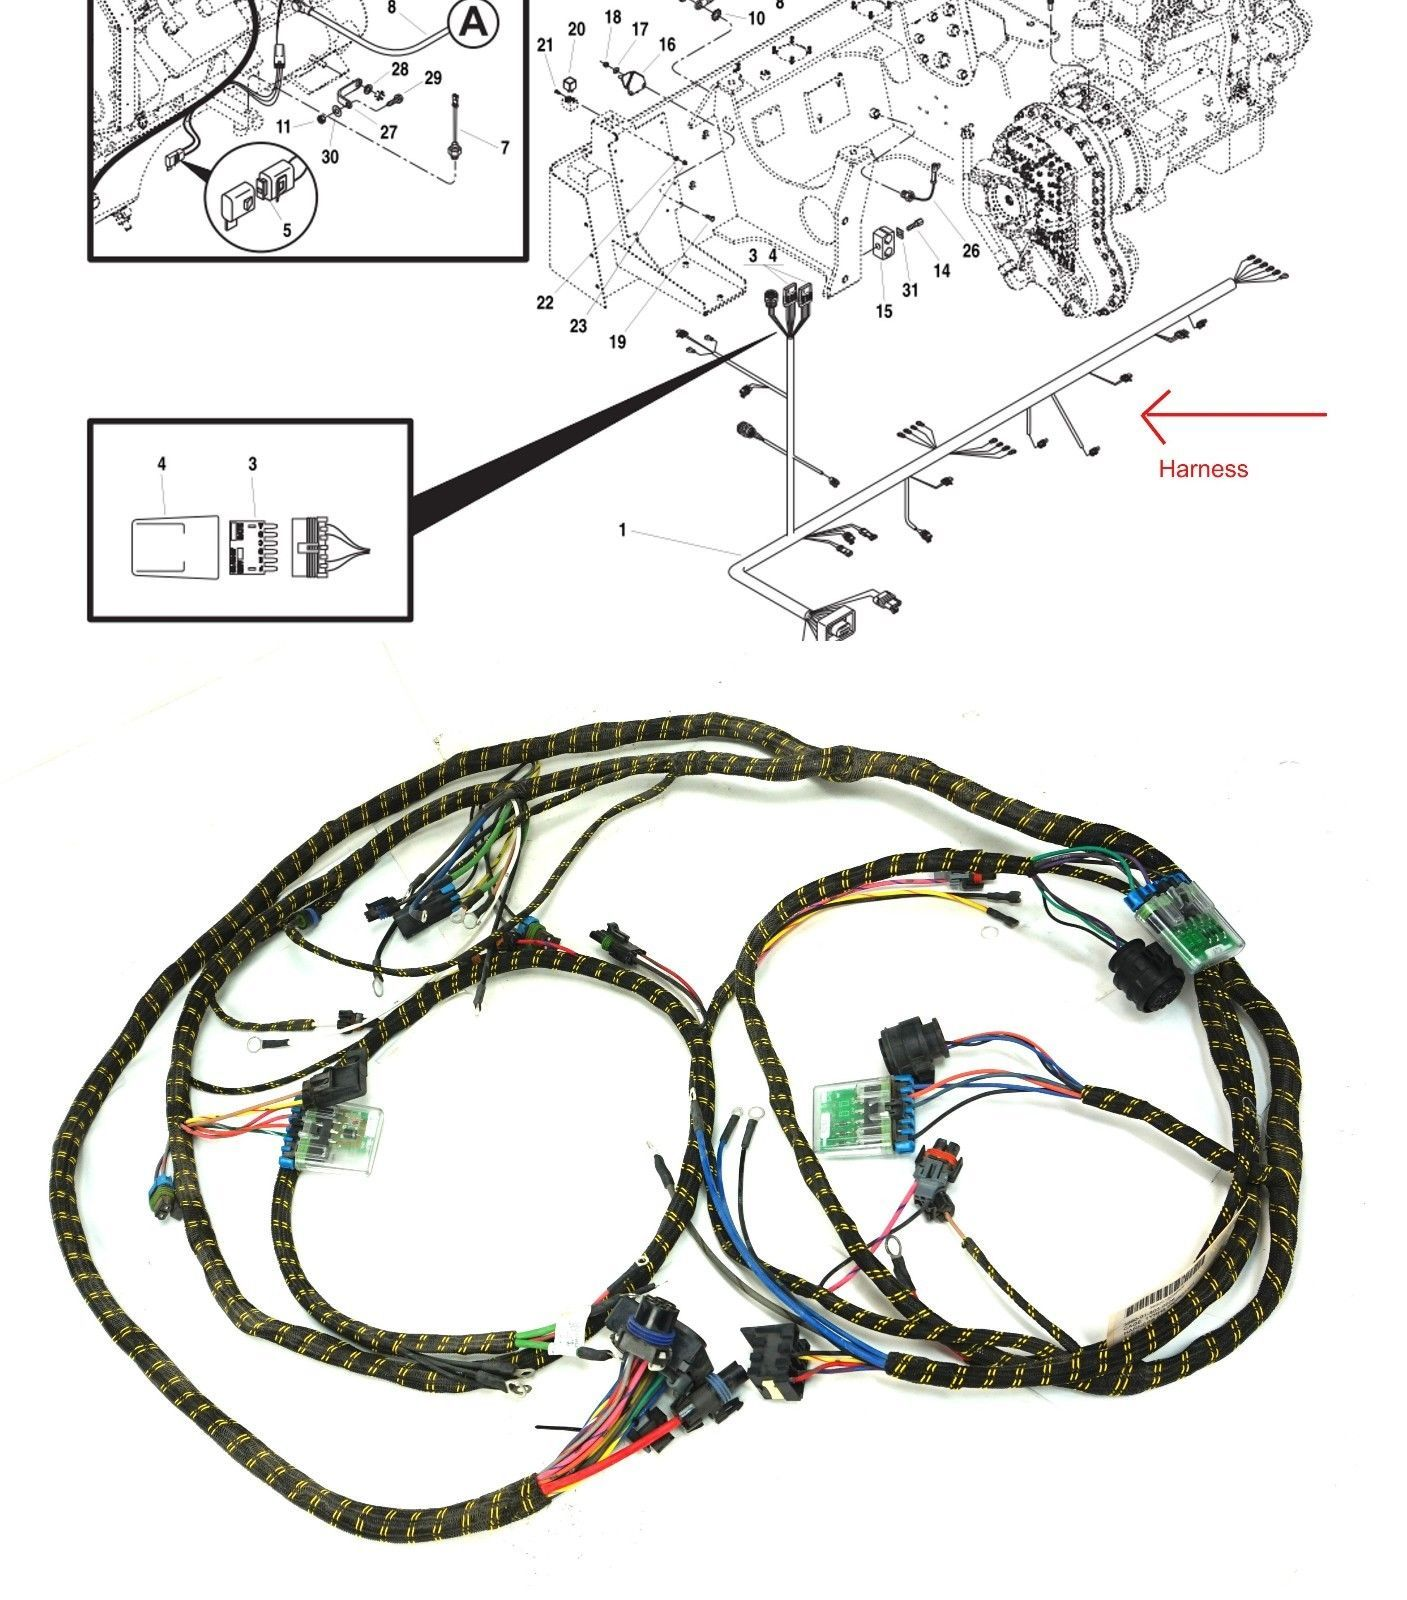 hight resolution of jlg 6000m skytrack mmv forklift wiring harness engine start system 6623304